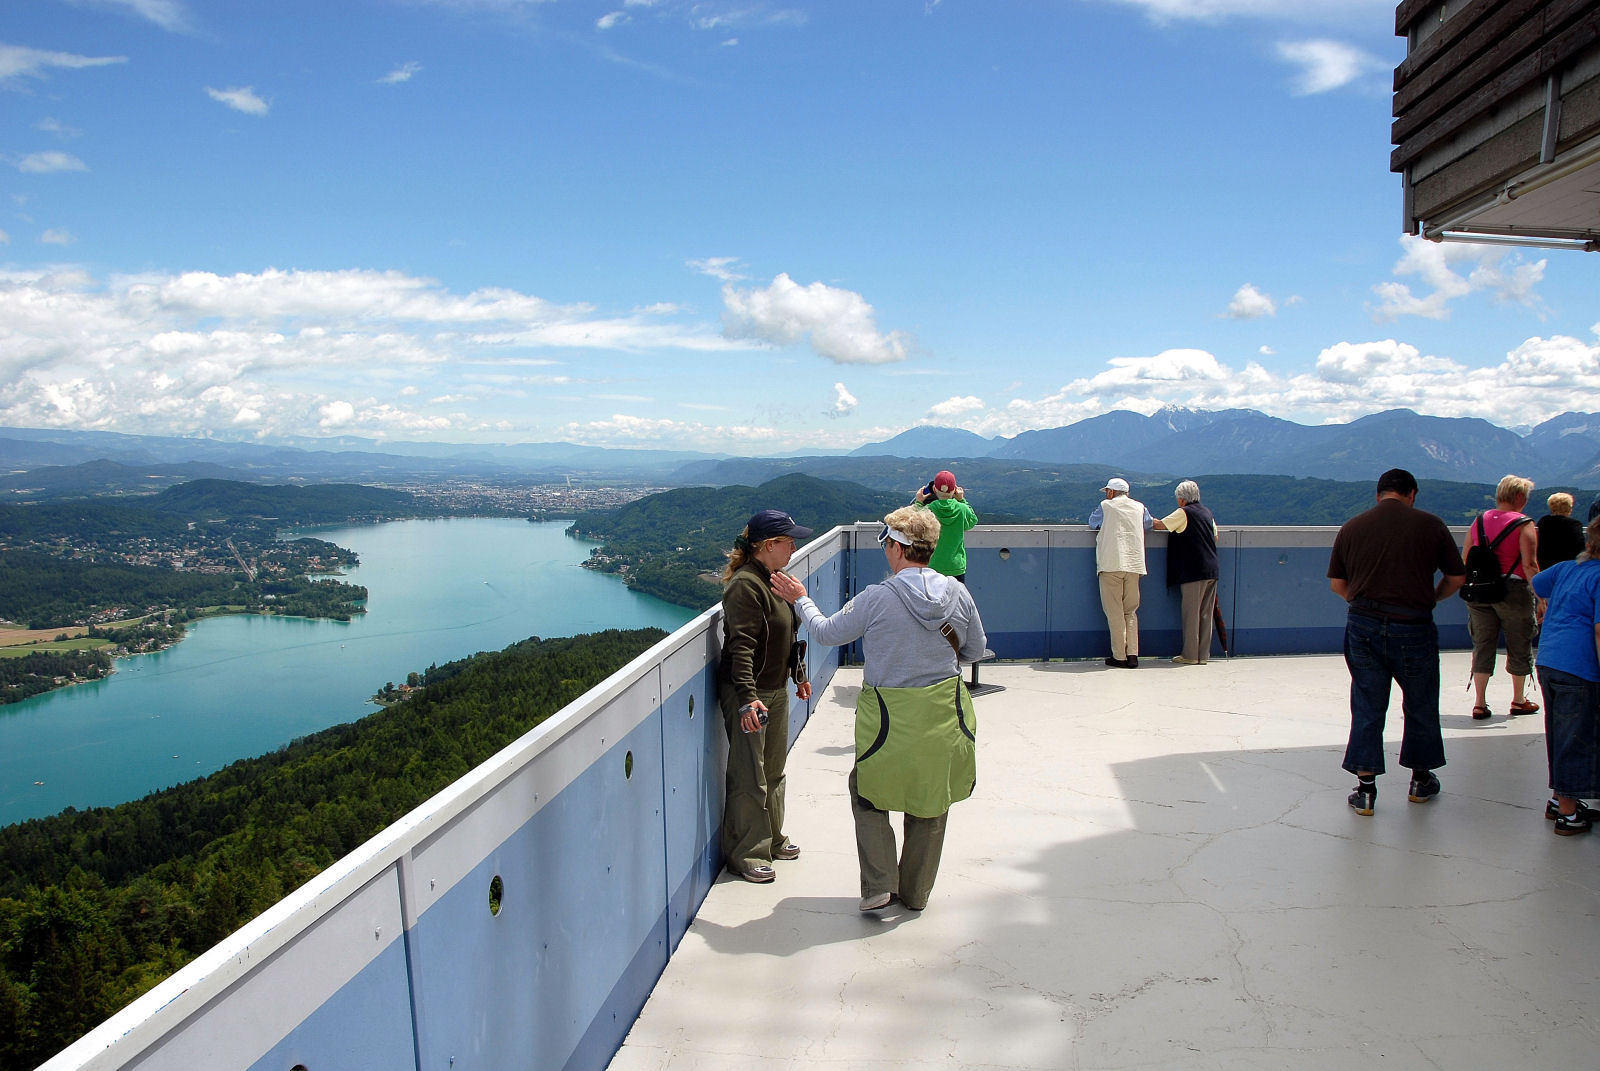 From the Pyramidenkogel Observation Tower you can see for a very wide distance on a clear day